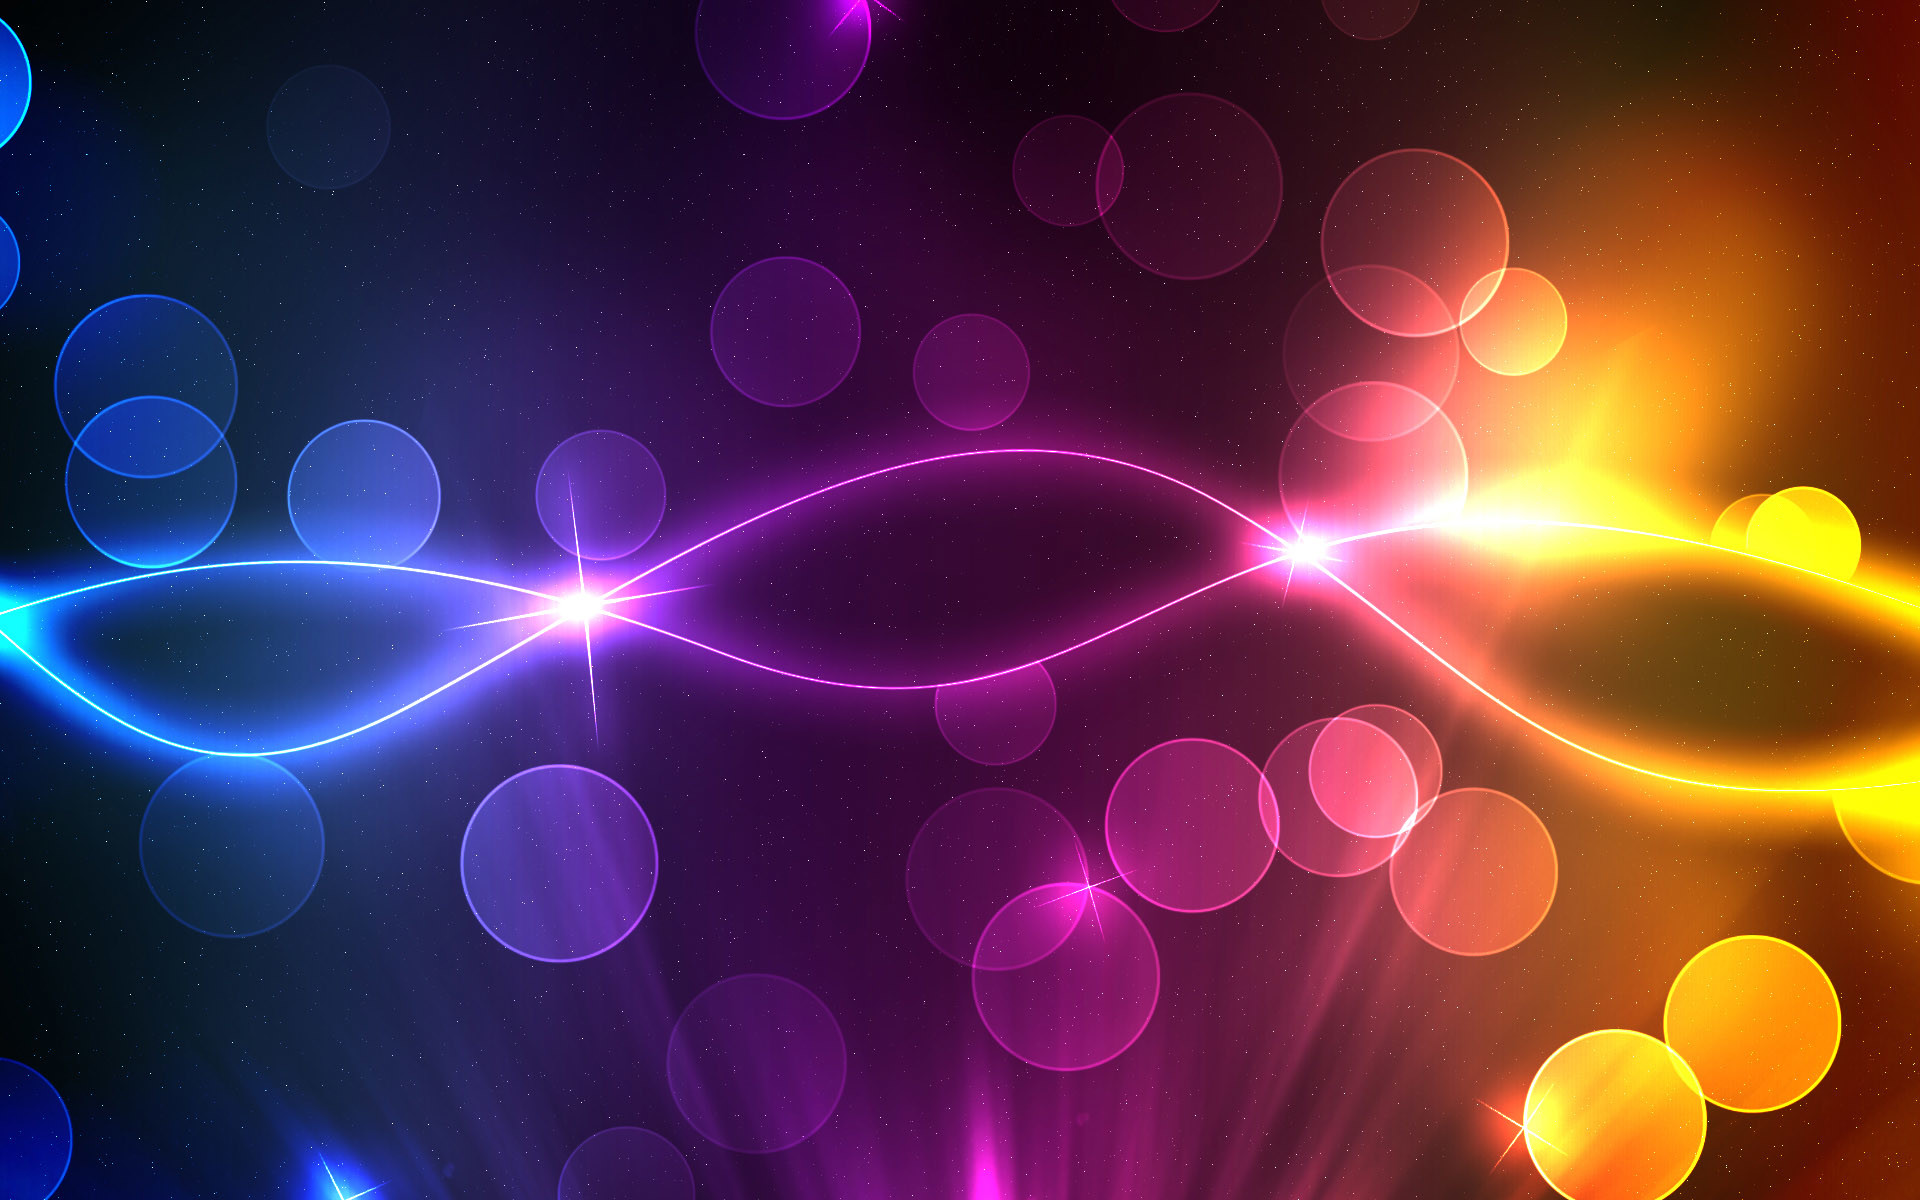 HD color background wallpaper 18429 – Background color theme .